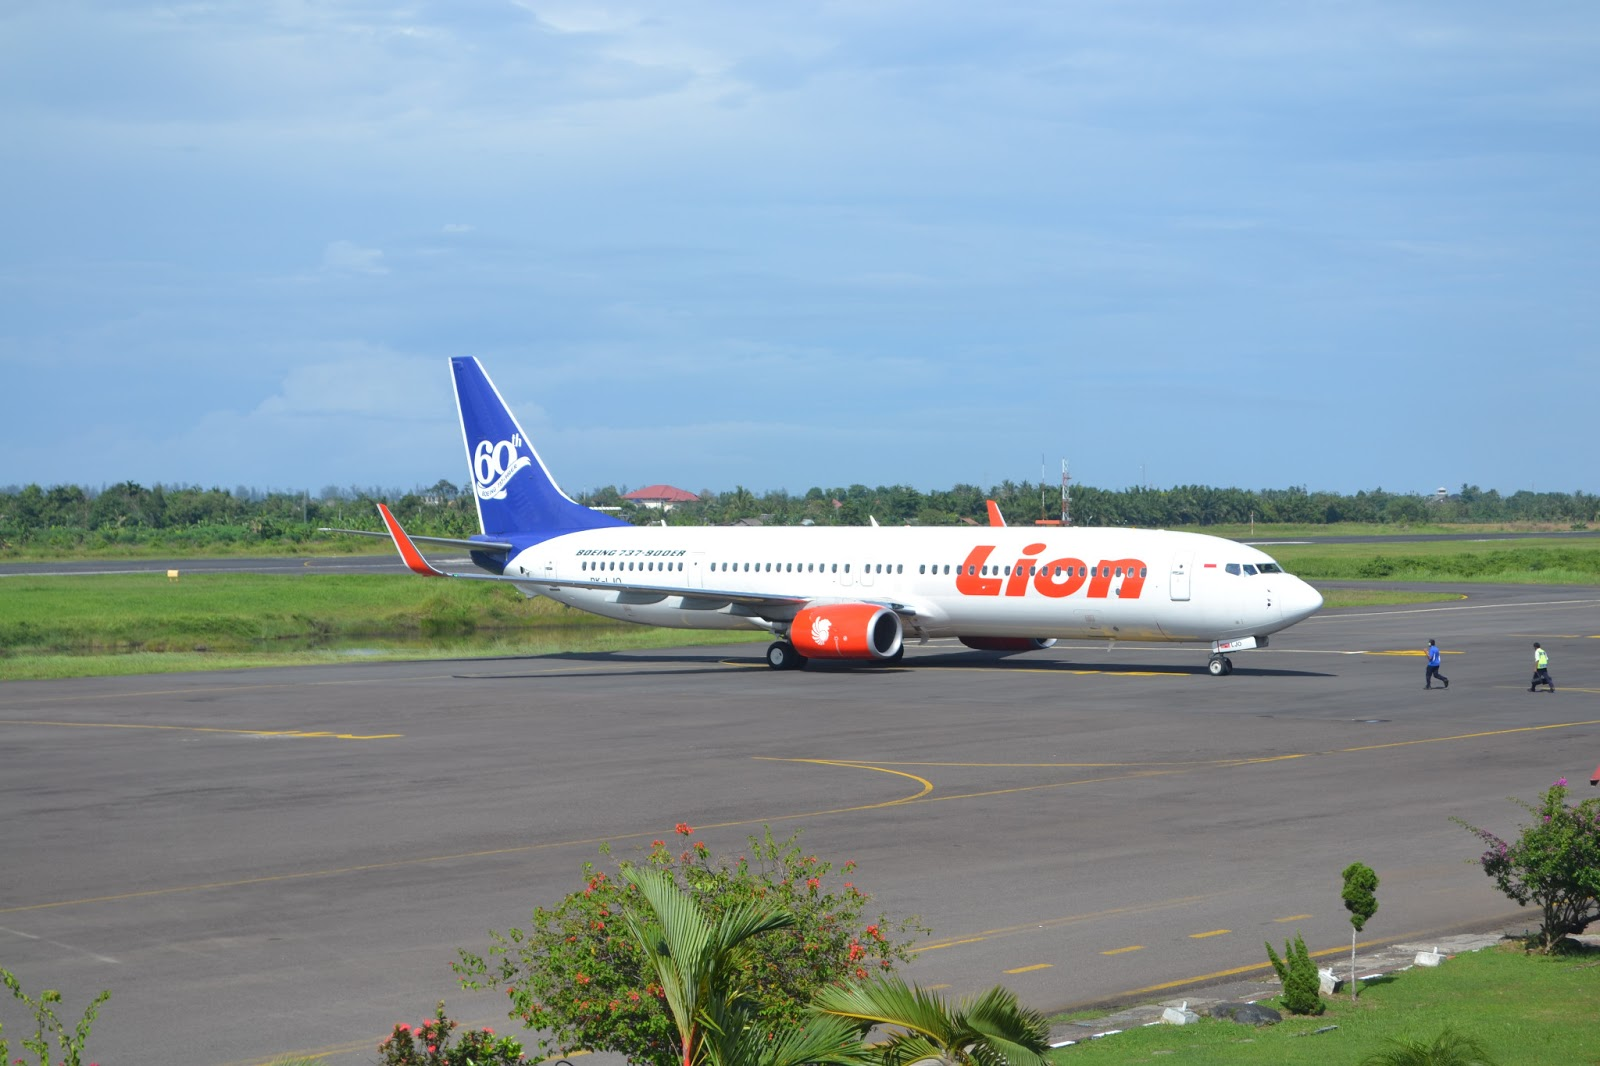 PZ C: pesawat lion air